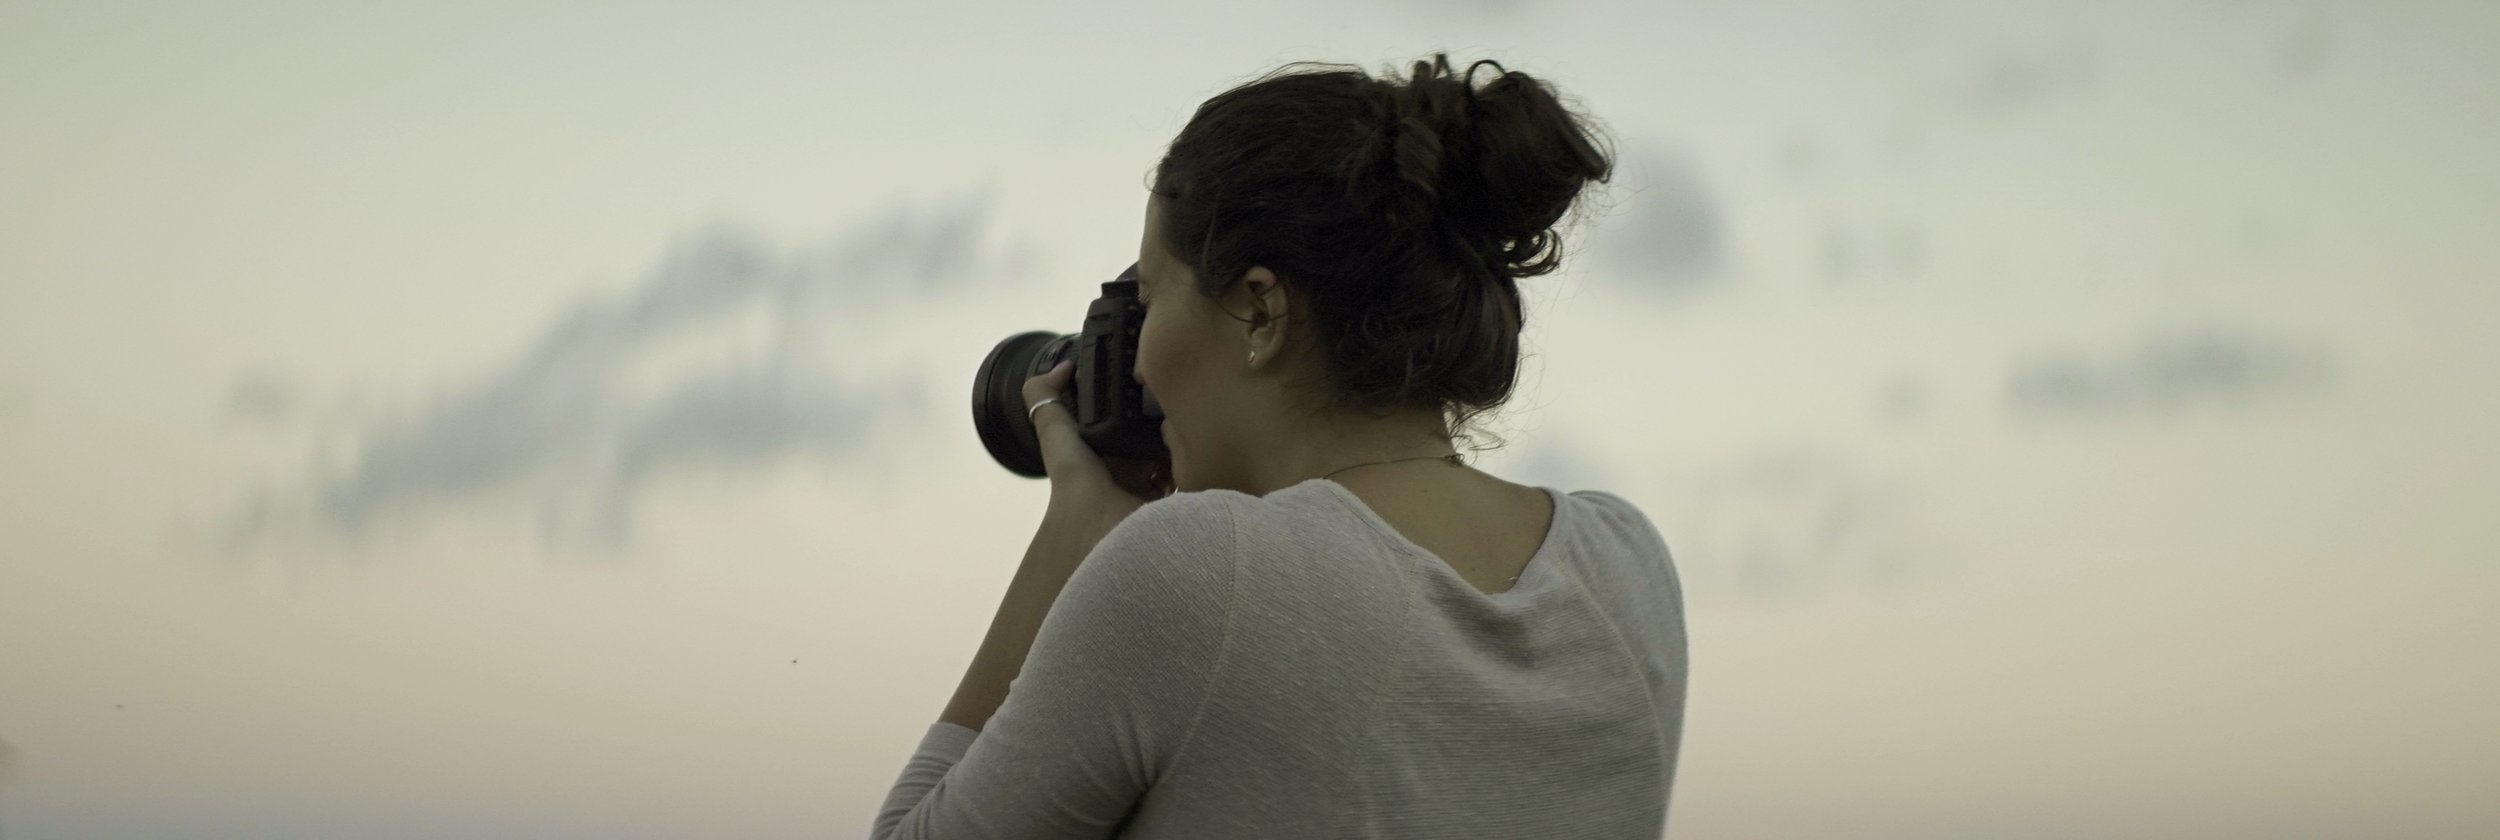 Lomo 100mm anamorphic lens | Olivia snapping a photo on the Canon 5D mark iii - Mackinac Island, MI - Photo by: Keith Nickoson